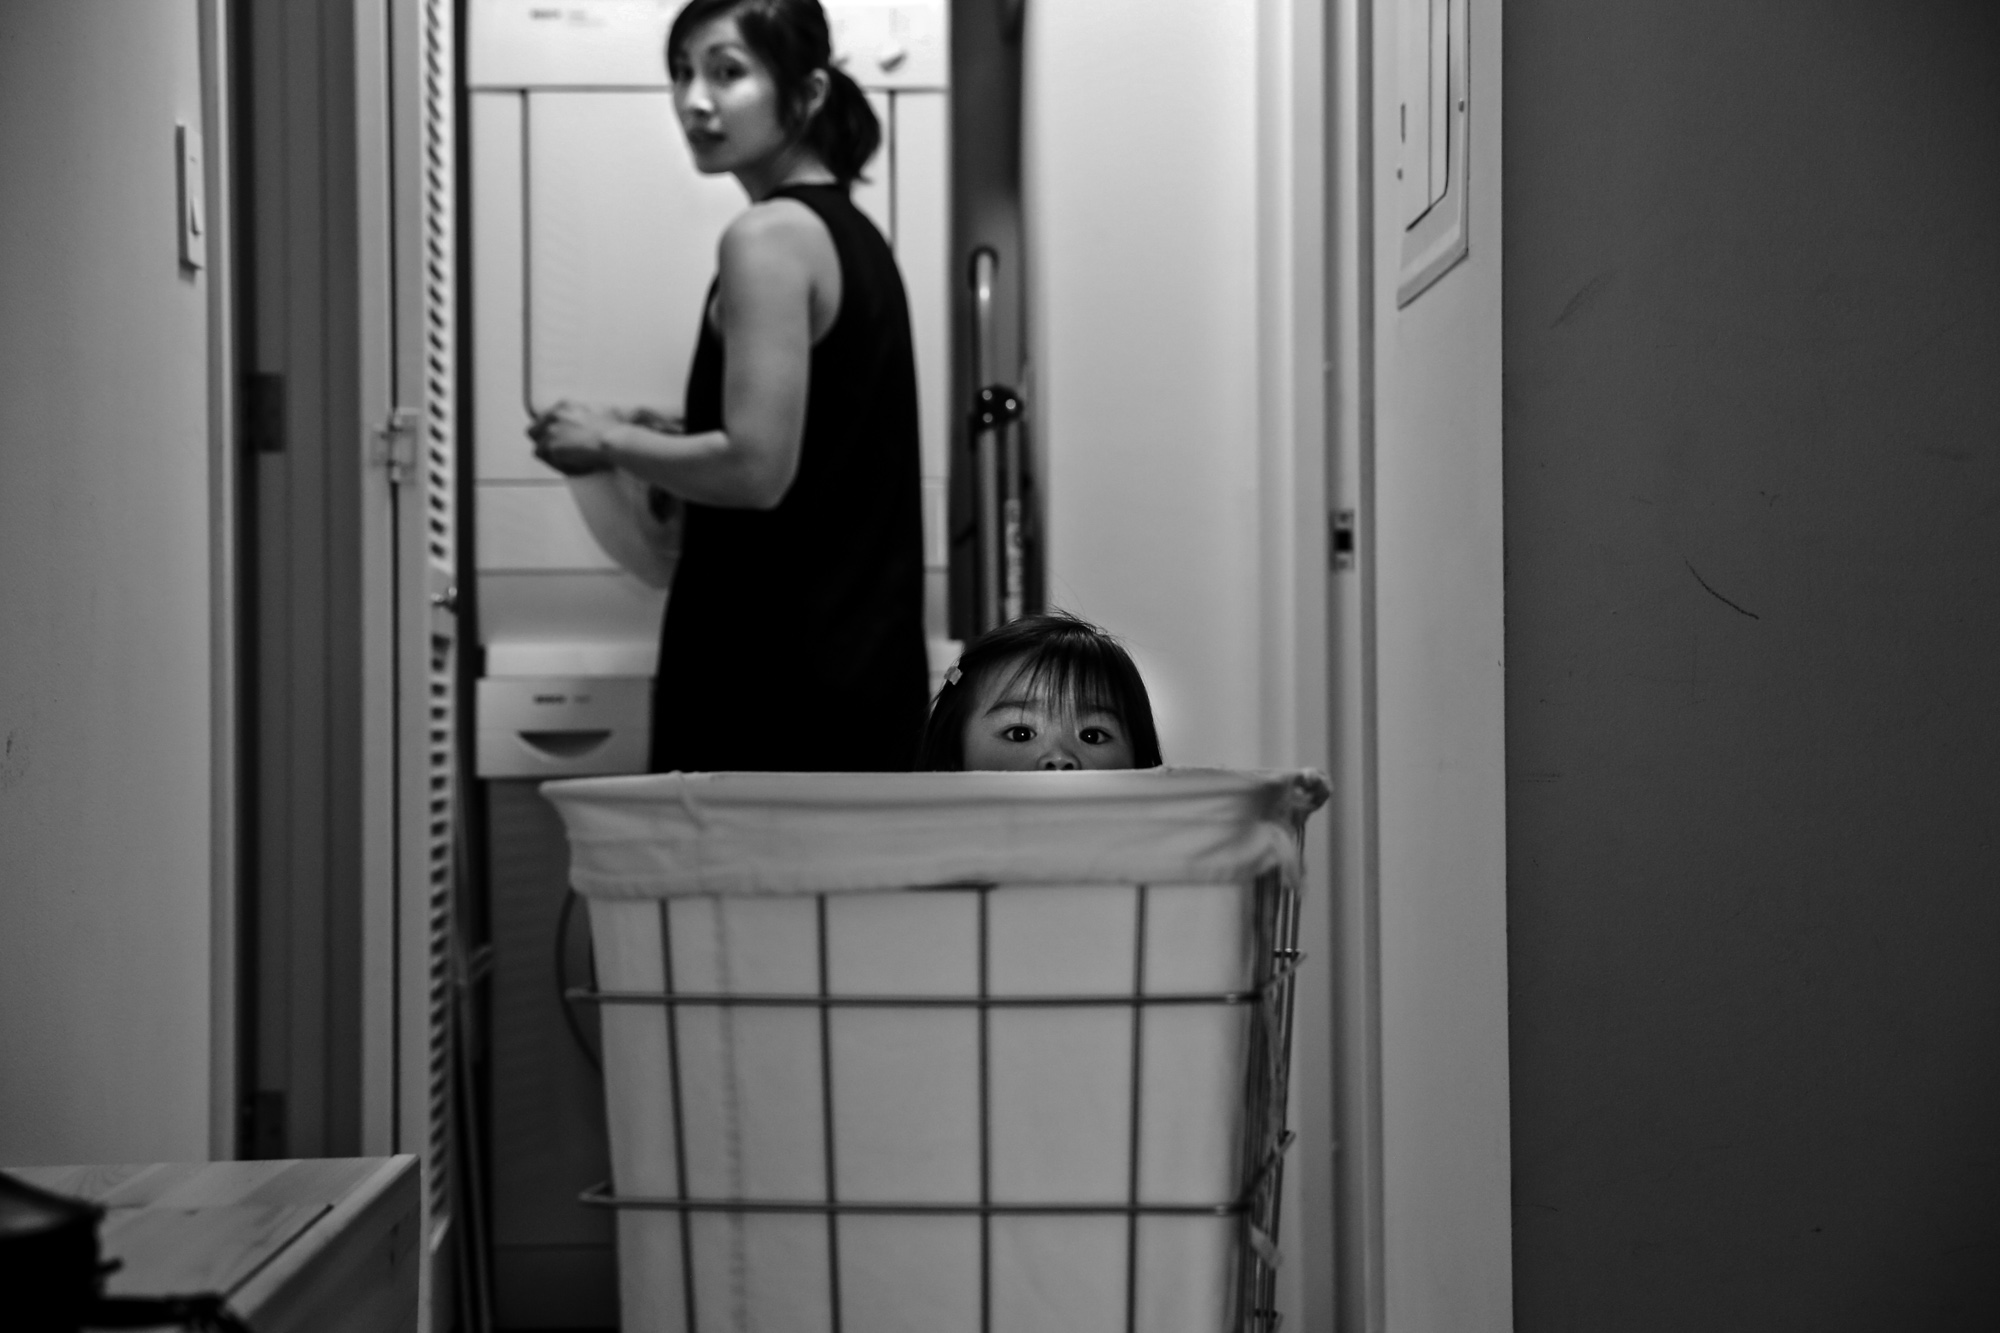 Girl peeks out behind laundry basket while woman looks